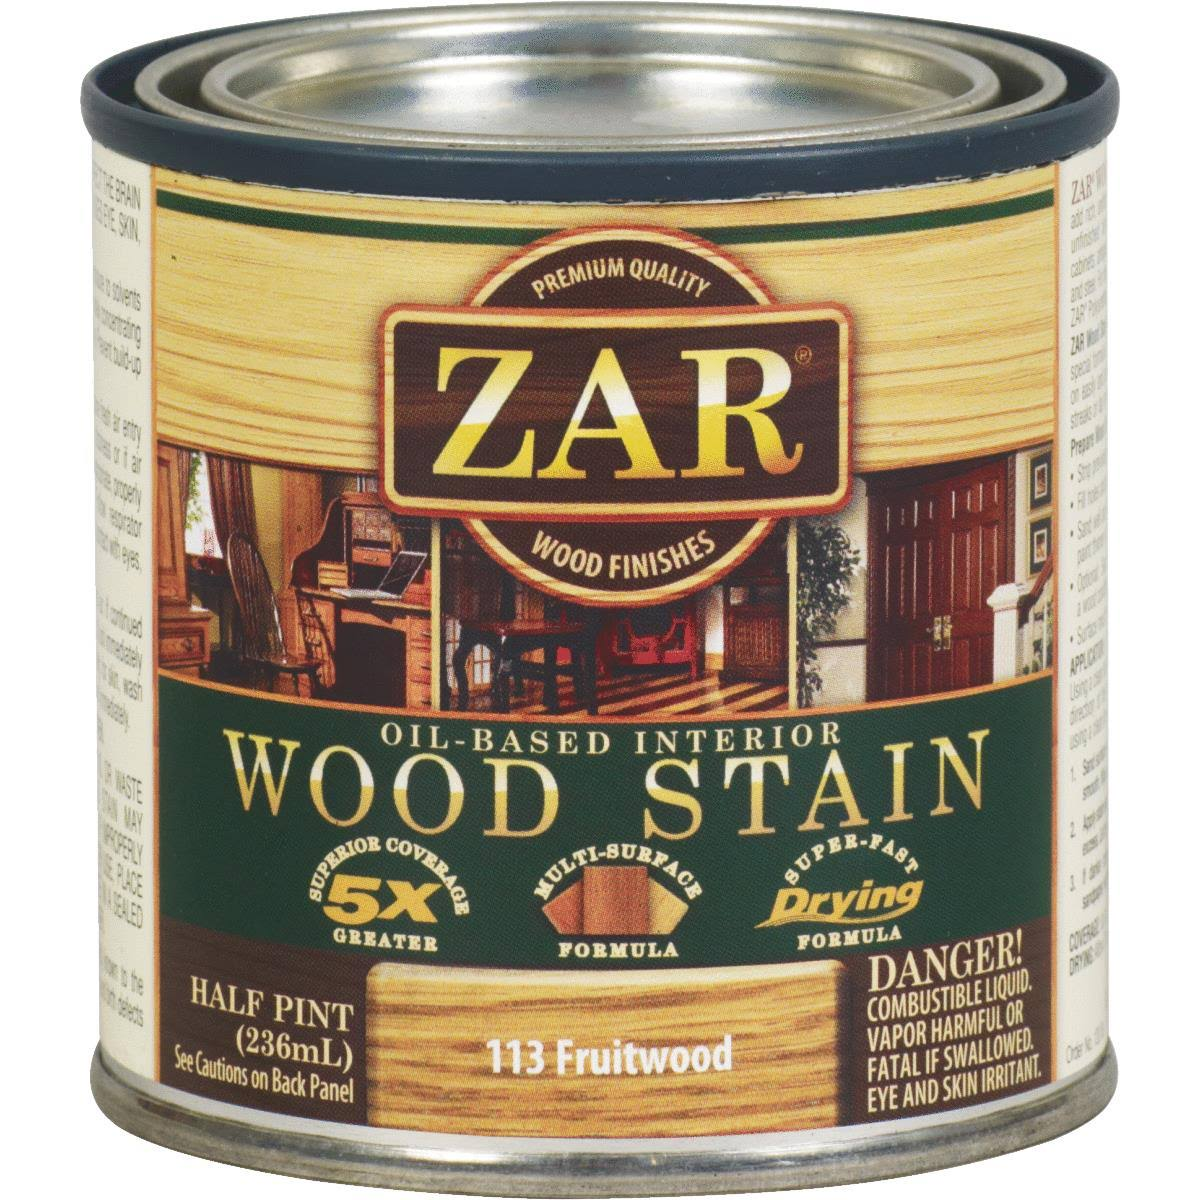 United Gilsonite Zar Oil-Based Wood Stain - 113 Fruitwood, 236ml